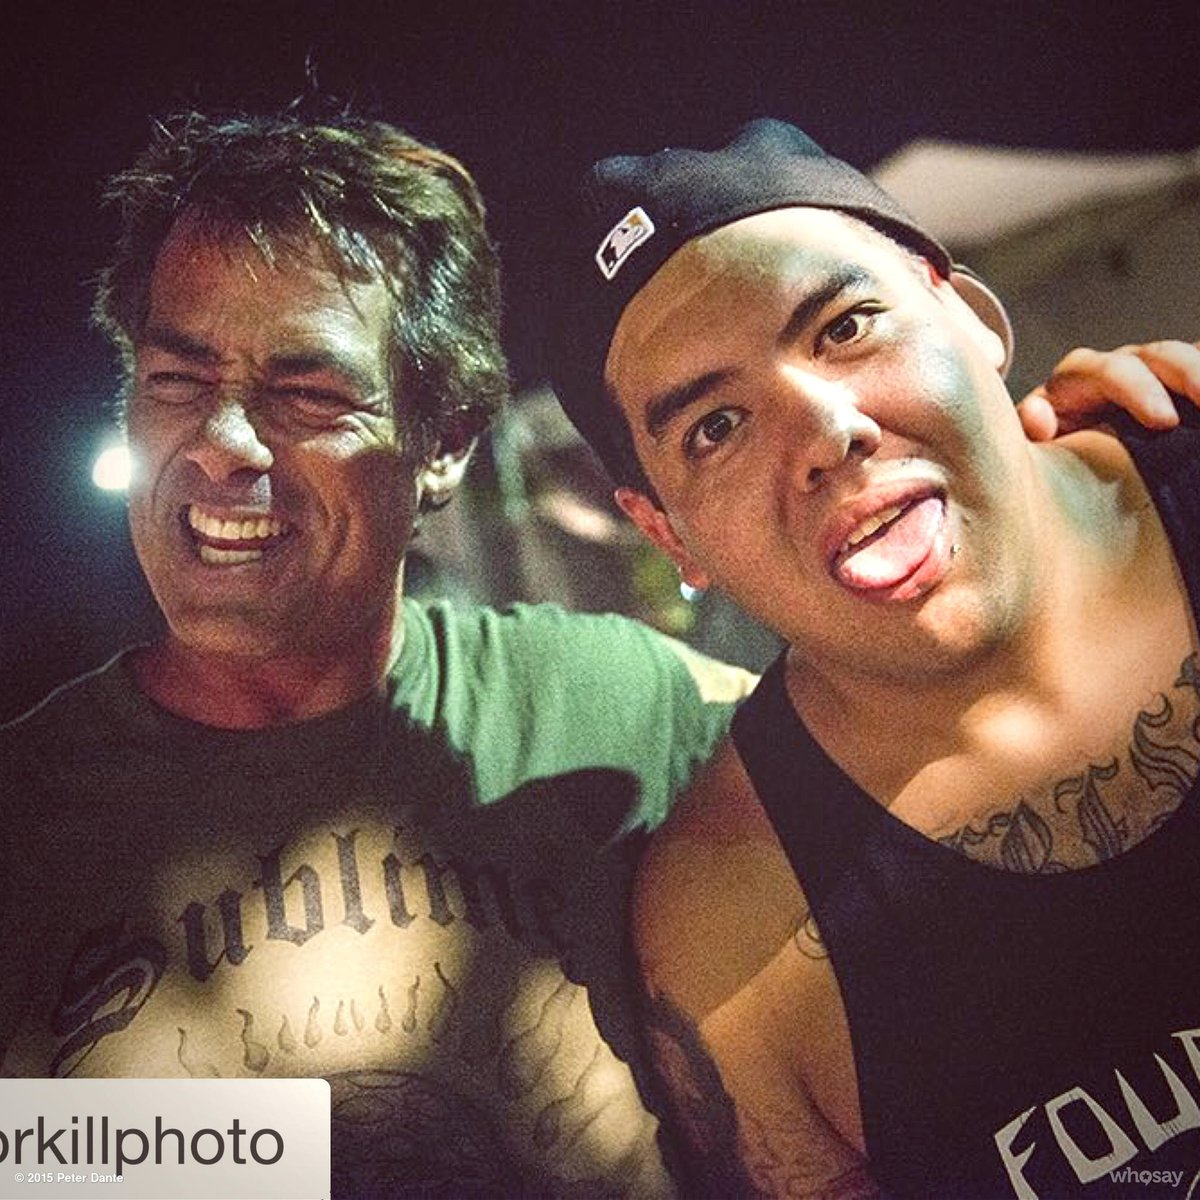 """I'll goto The Looney Bin with you I Don't Give A Fuck!"" #Dante #GrandmasBoy @RomeMusica @SublimeWithRome #Flashback https://t.co/uVLT6DI9zC"